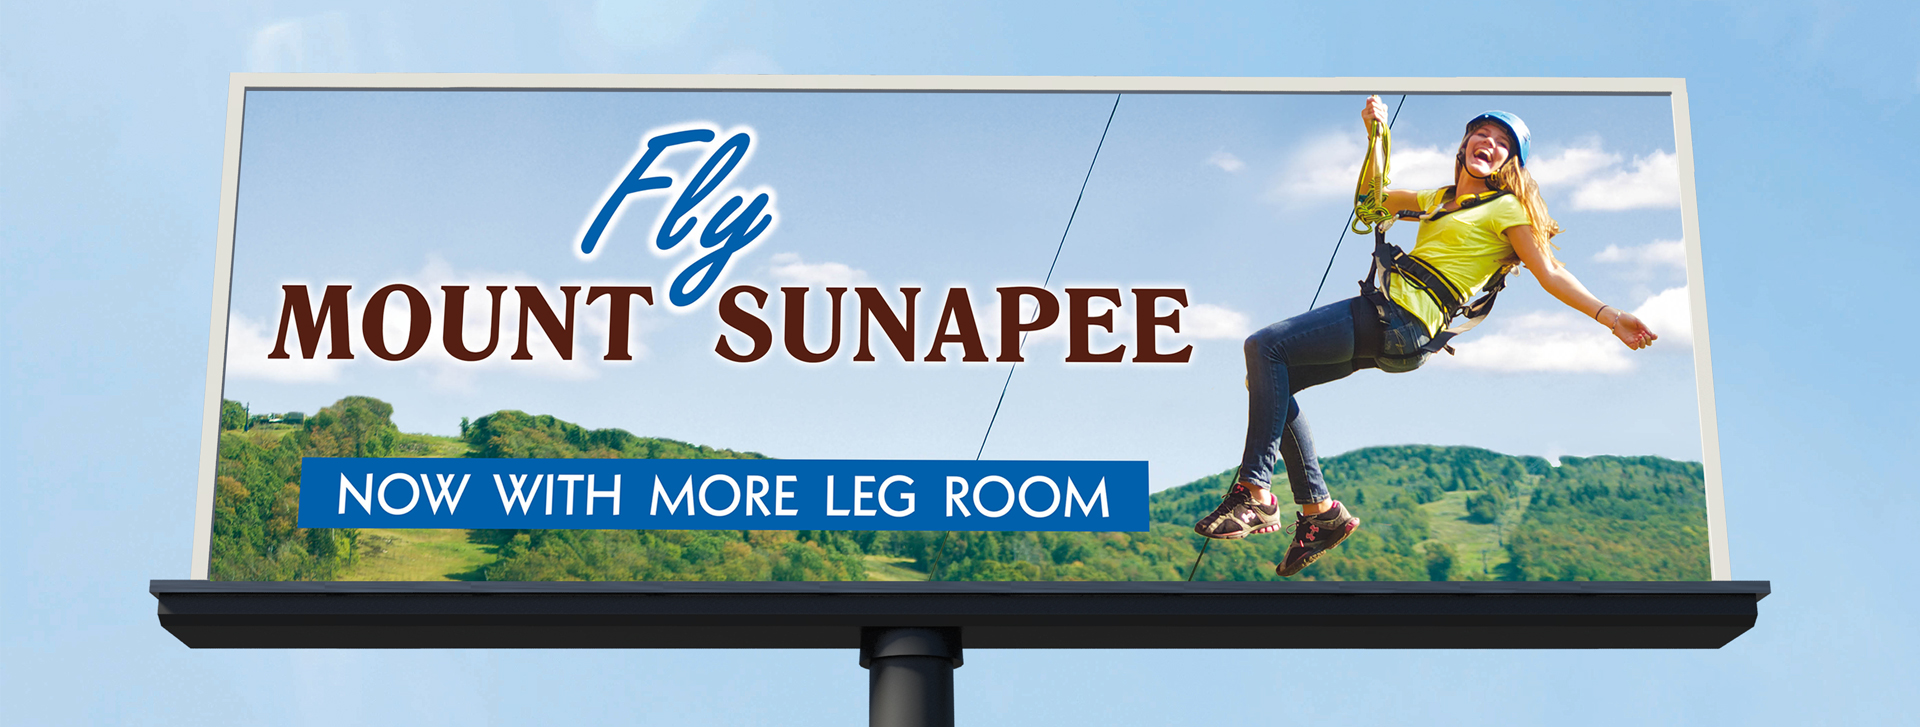 Fly Mount Sunapee billboard, now with more leg room with female on zipline